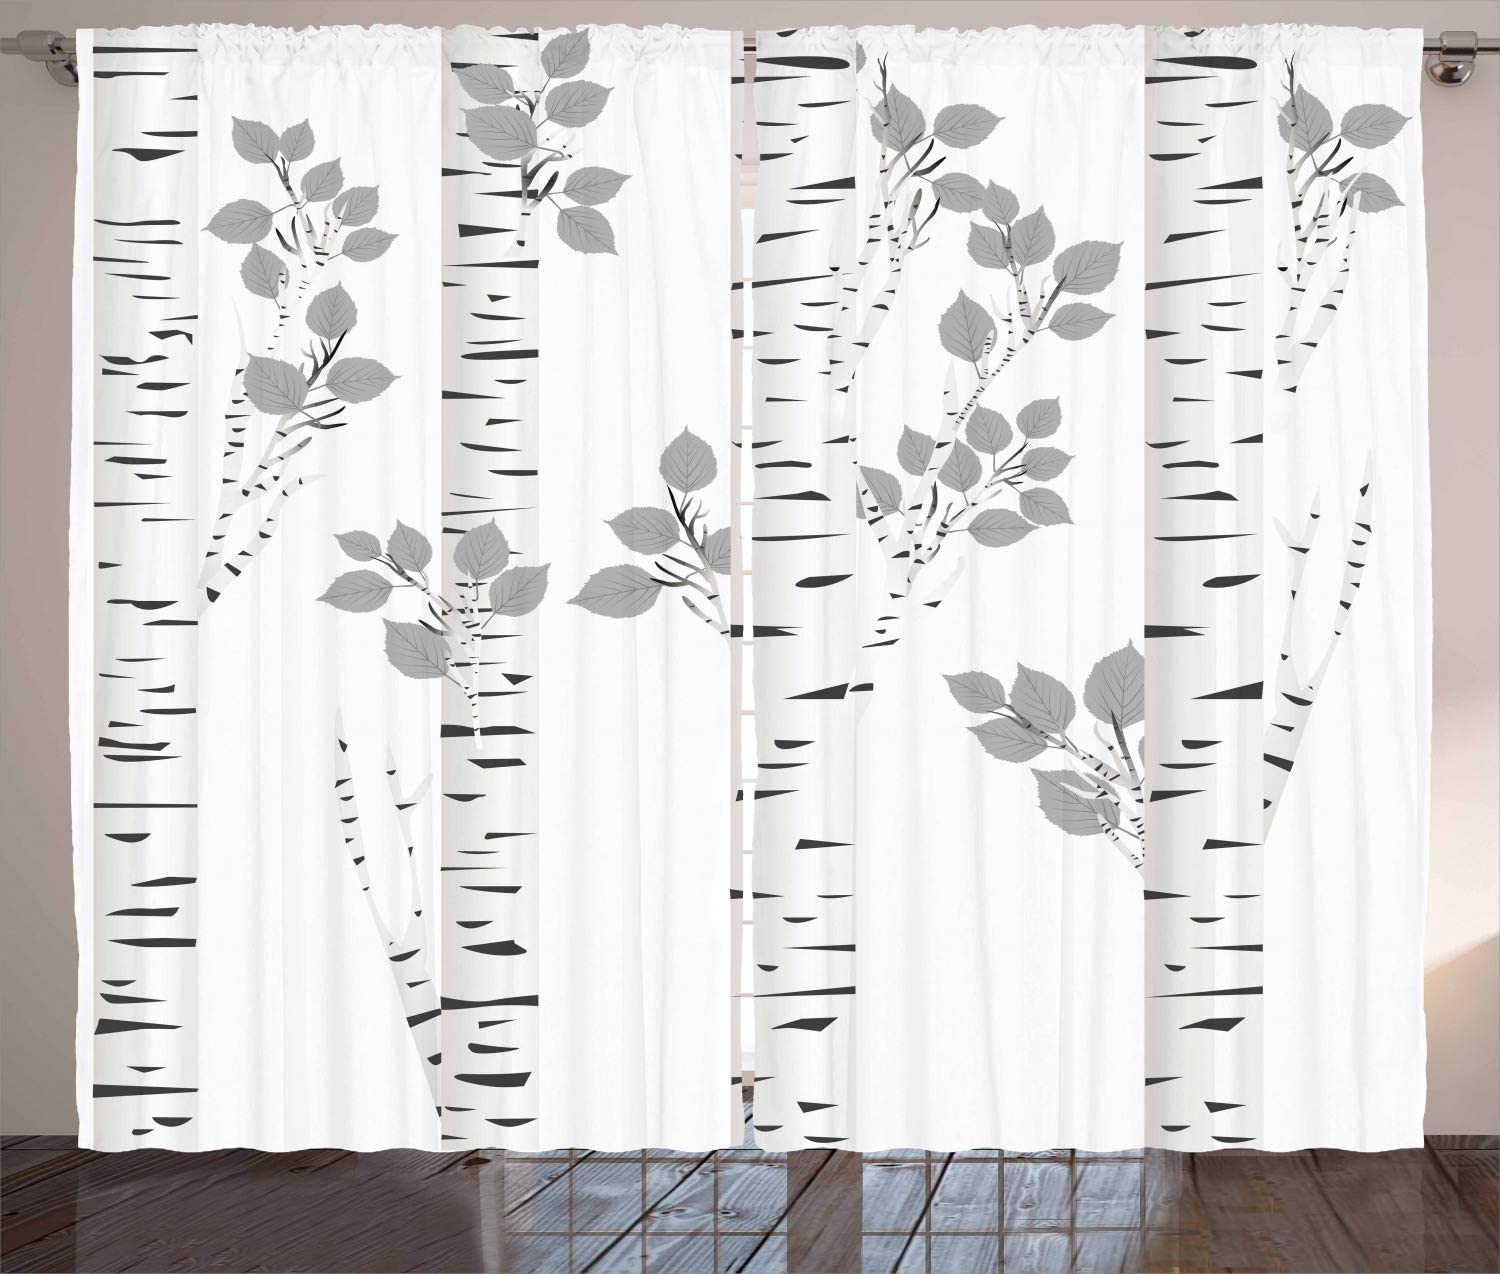 "Ambesonne Birch Tree Curtains, White Branches with Leaves Autumn Nature Forest Inspired Image Print, Living Room Bedroom Window Drapes 2 Panel Set, 108"" X 96"", White Grey"